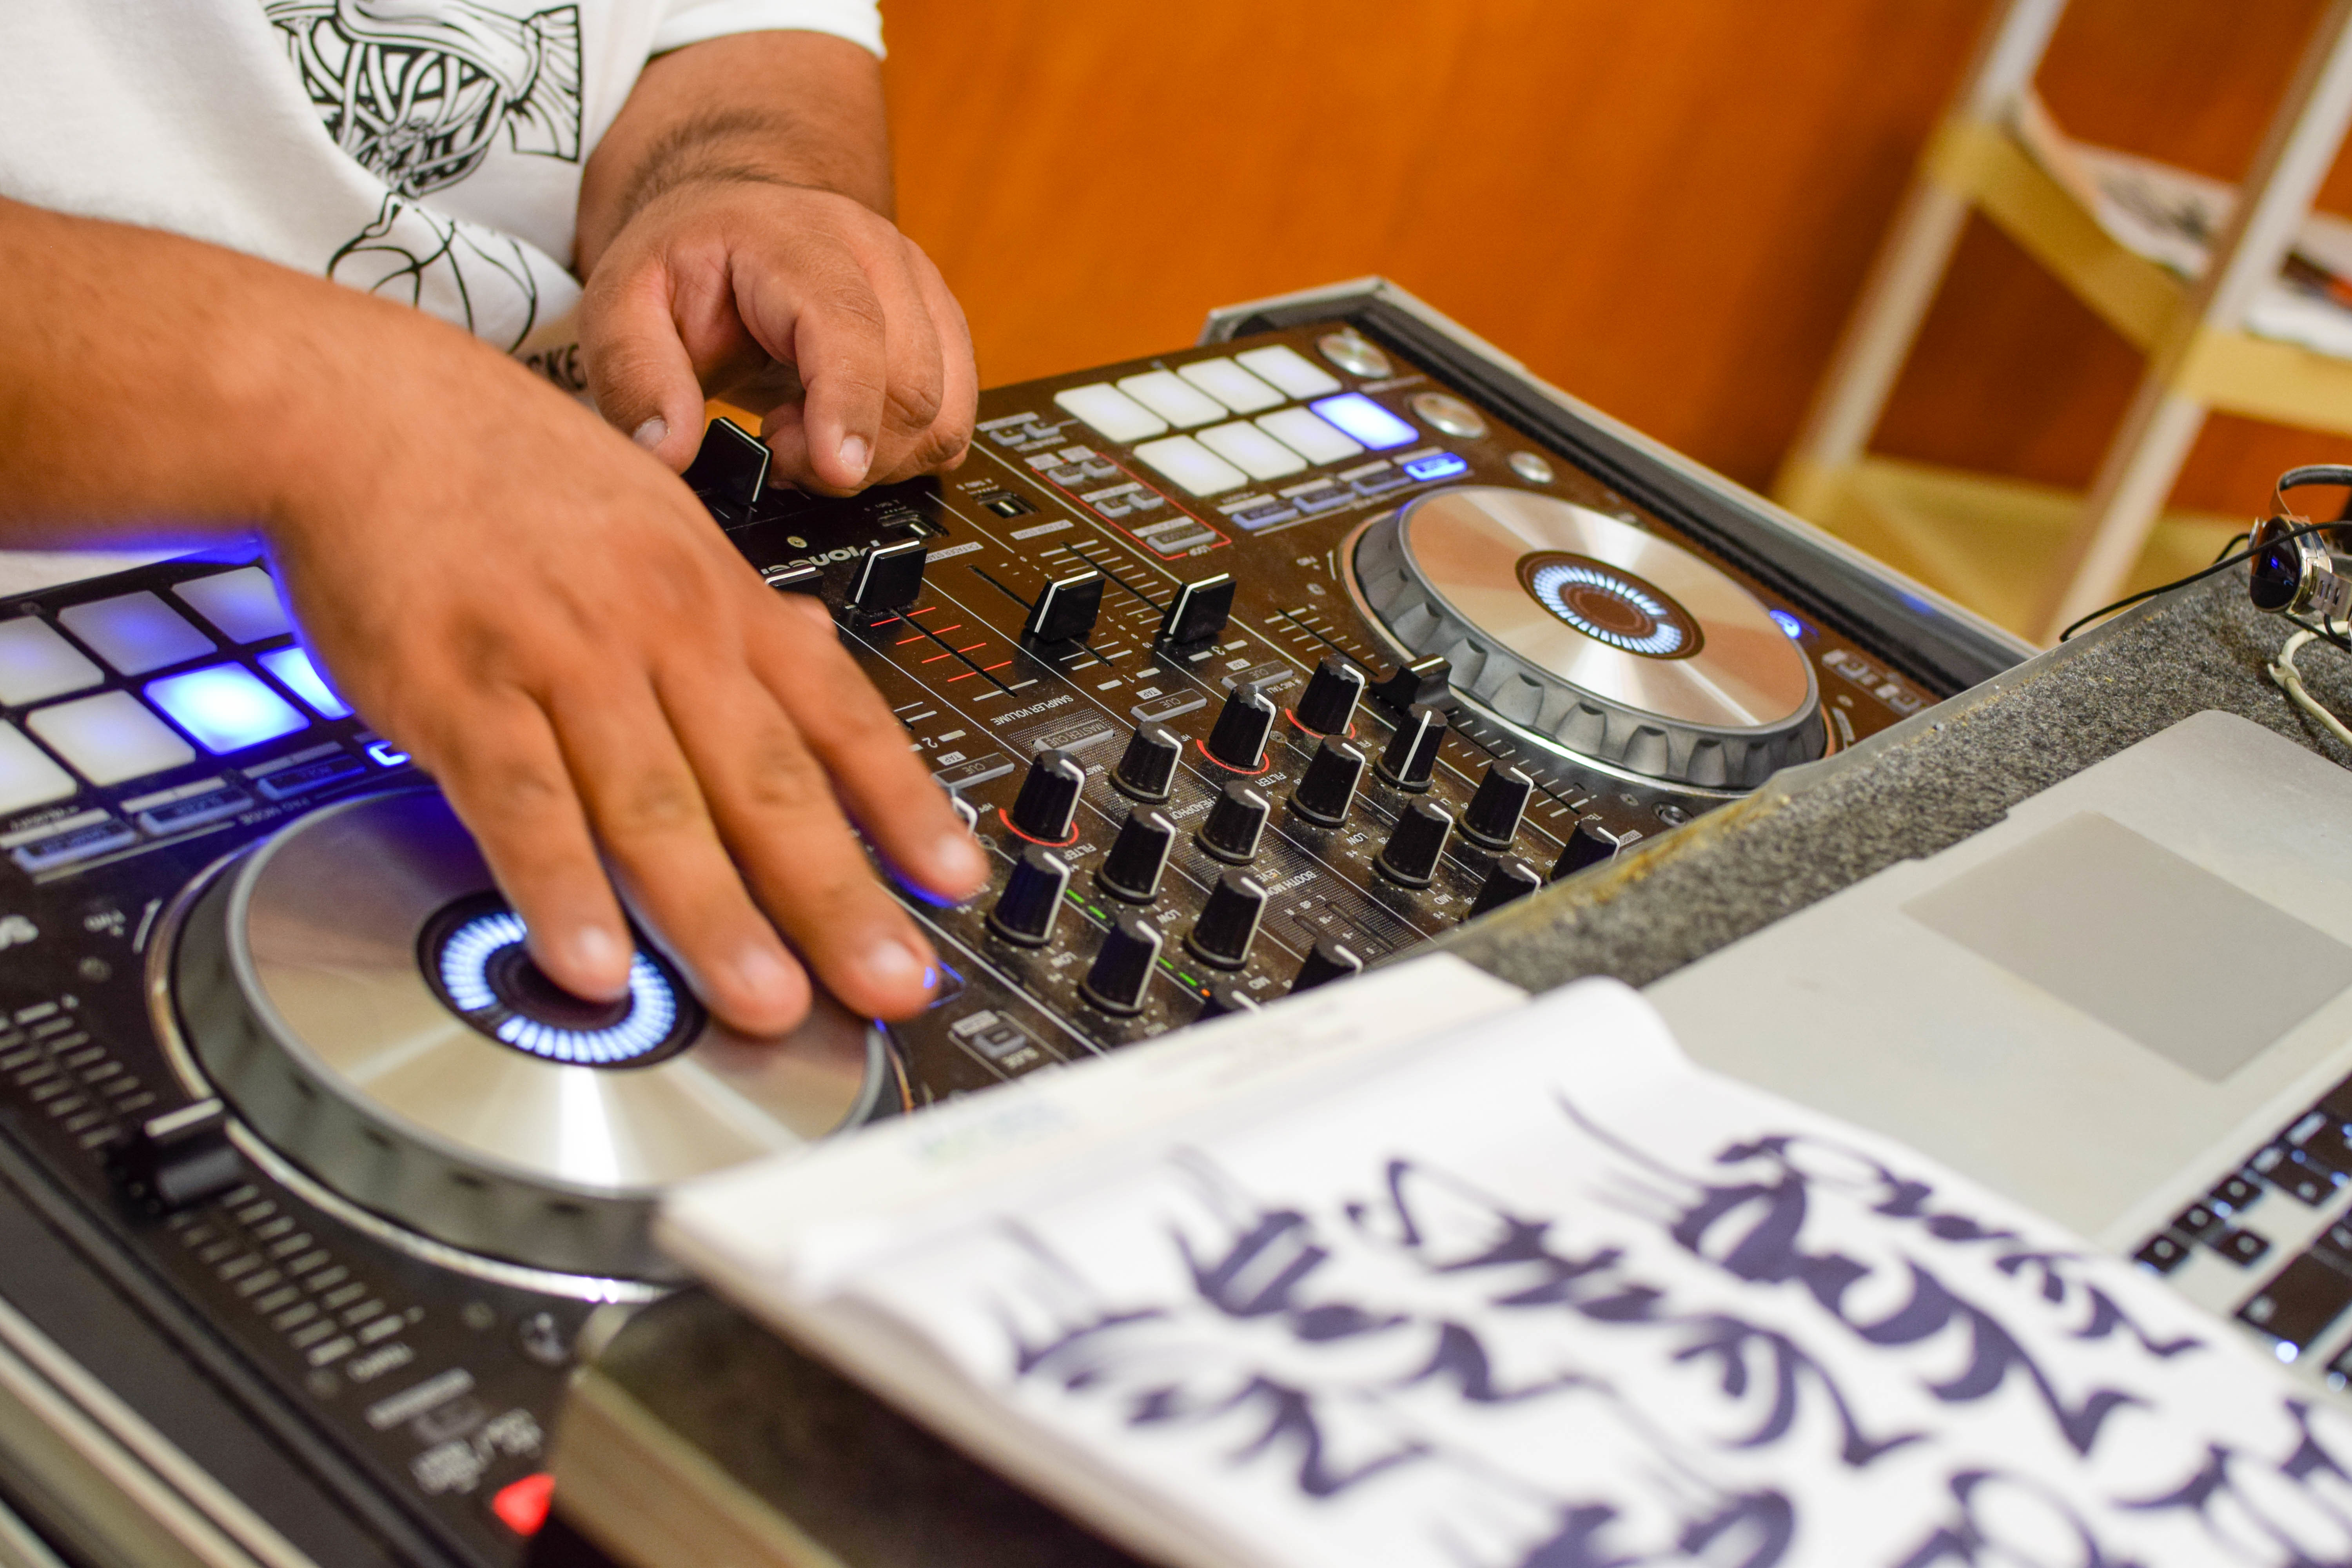 A pair of hands work a DJ turntable